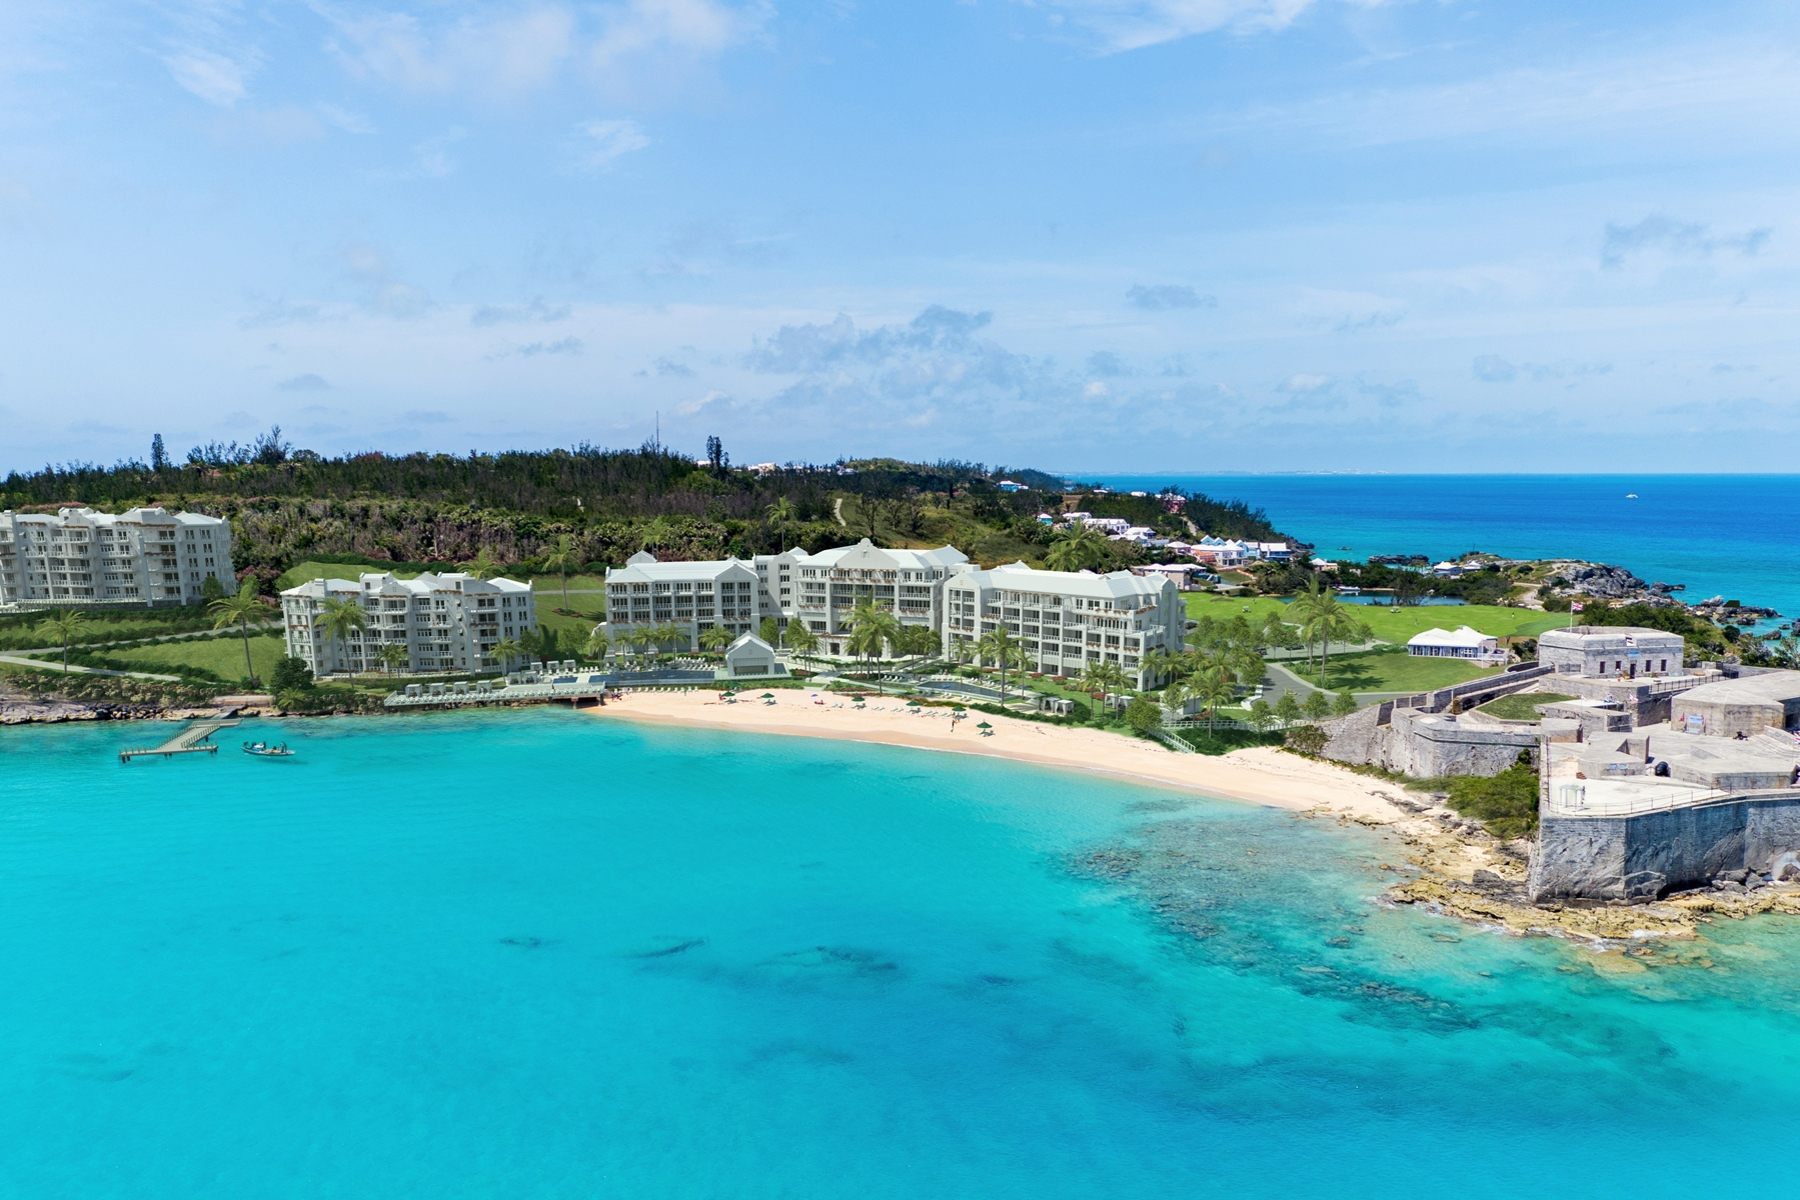 Condominiums for Sale at The Residences at St. Regis Bermuda Unit PHB St. Catherine's Beach Other Bermuda, Other Areas In Bermuda SG03 Bermuda